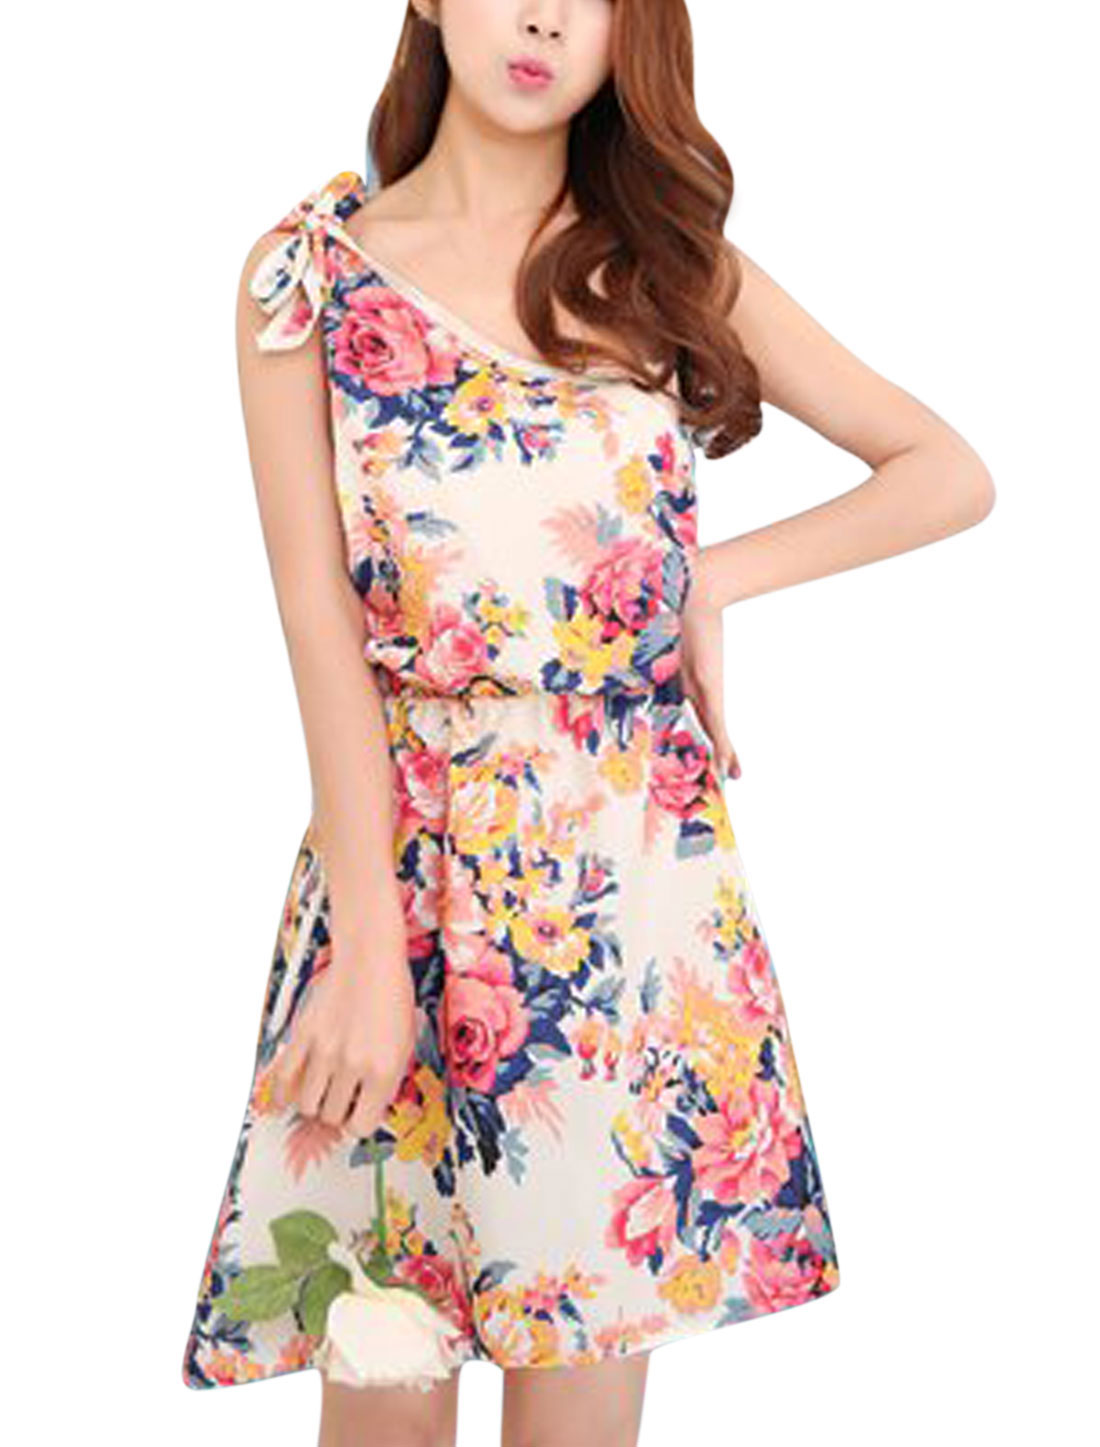 Ladies Flower Print One Shoulder Sleeveless Beach Dress Beige Red XS